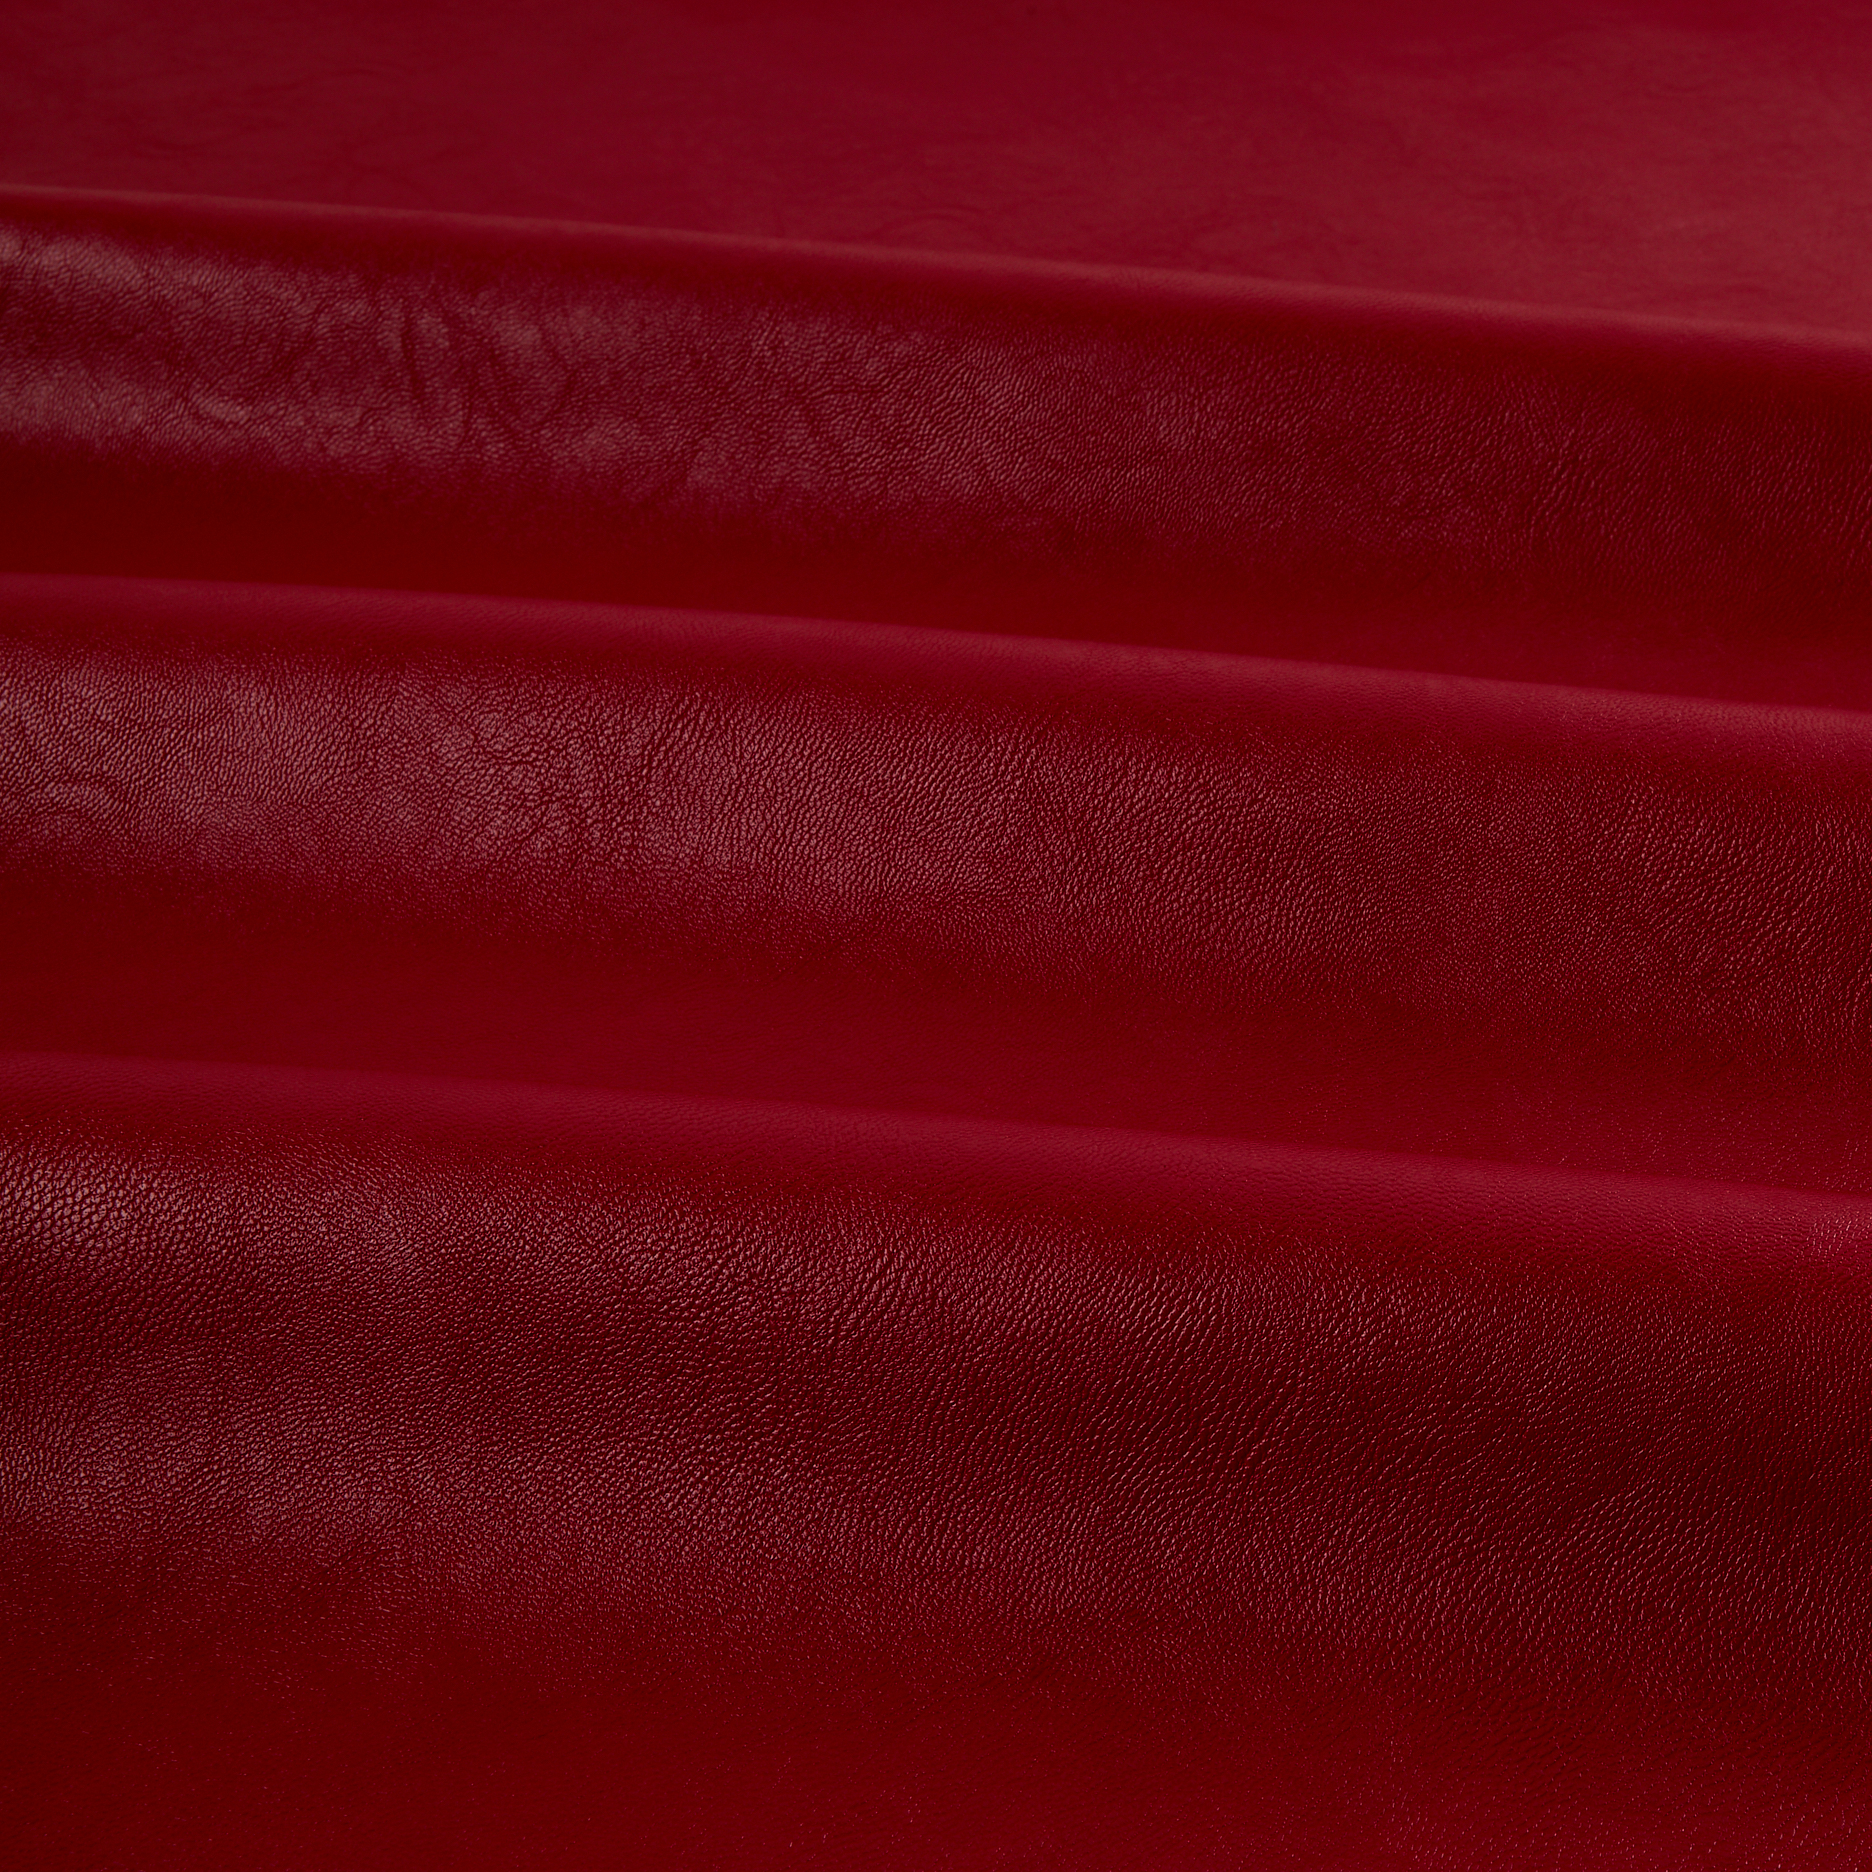 Telio Perfection Fused Faux Leather Red Fabric by Telio in USA